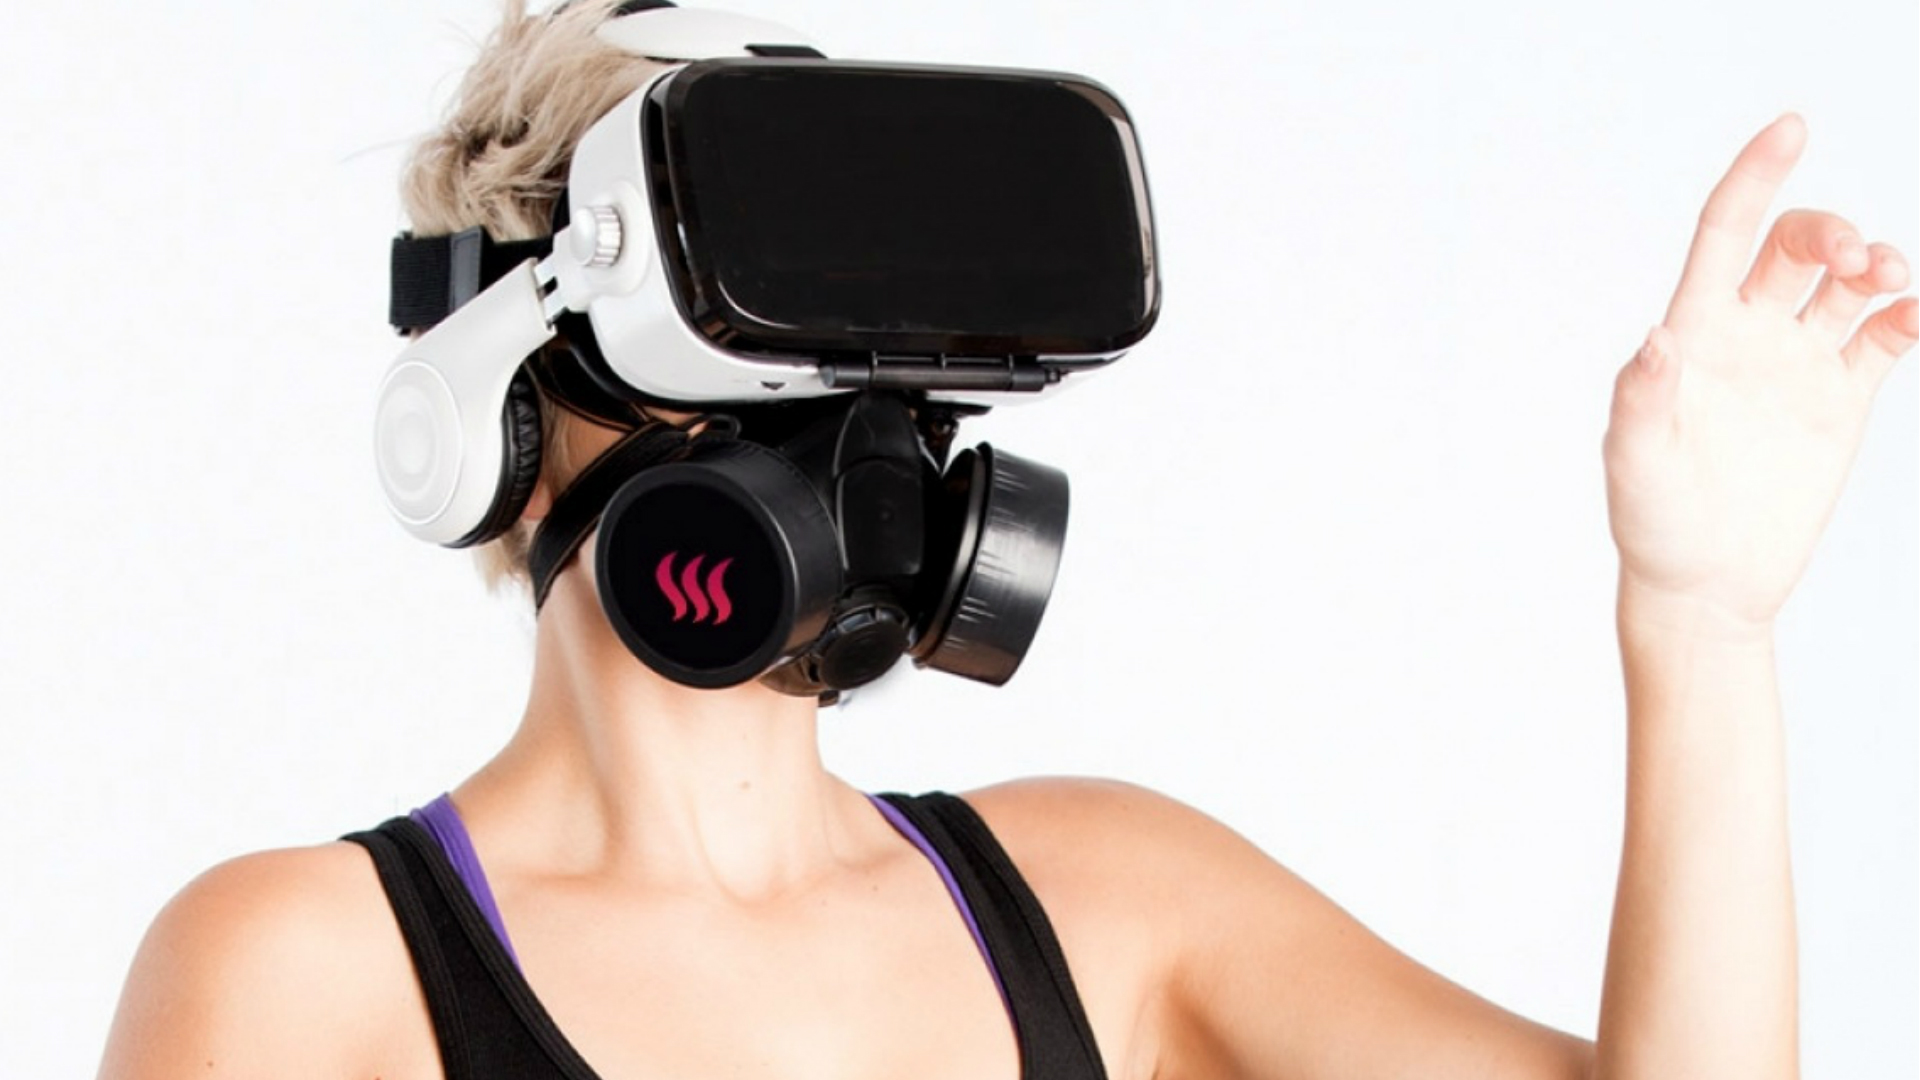 The VR porn accessory that allows you to smell